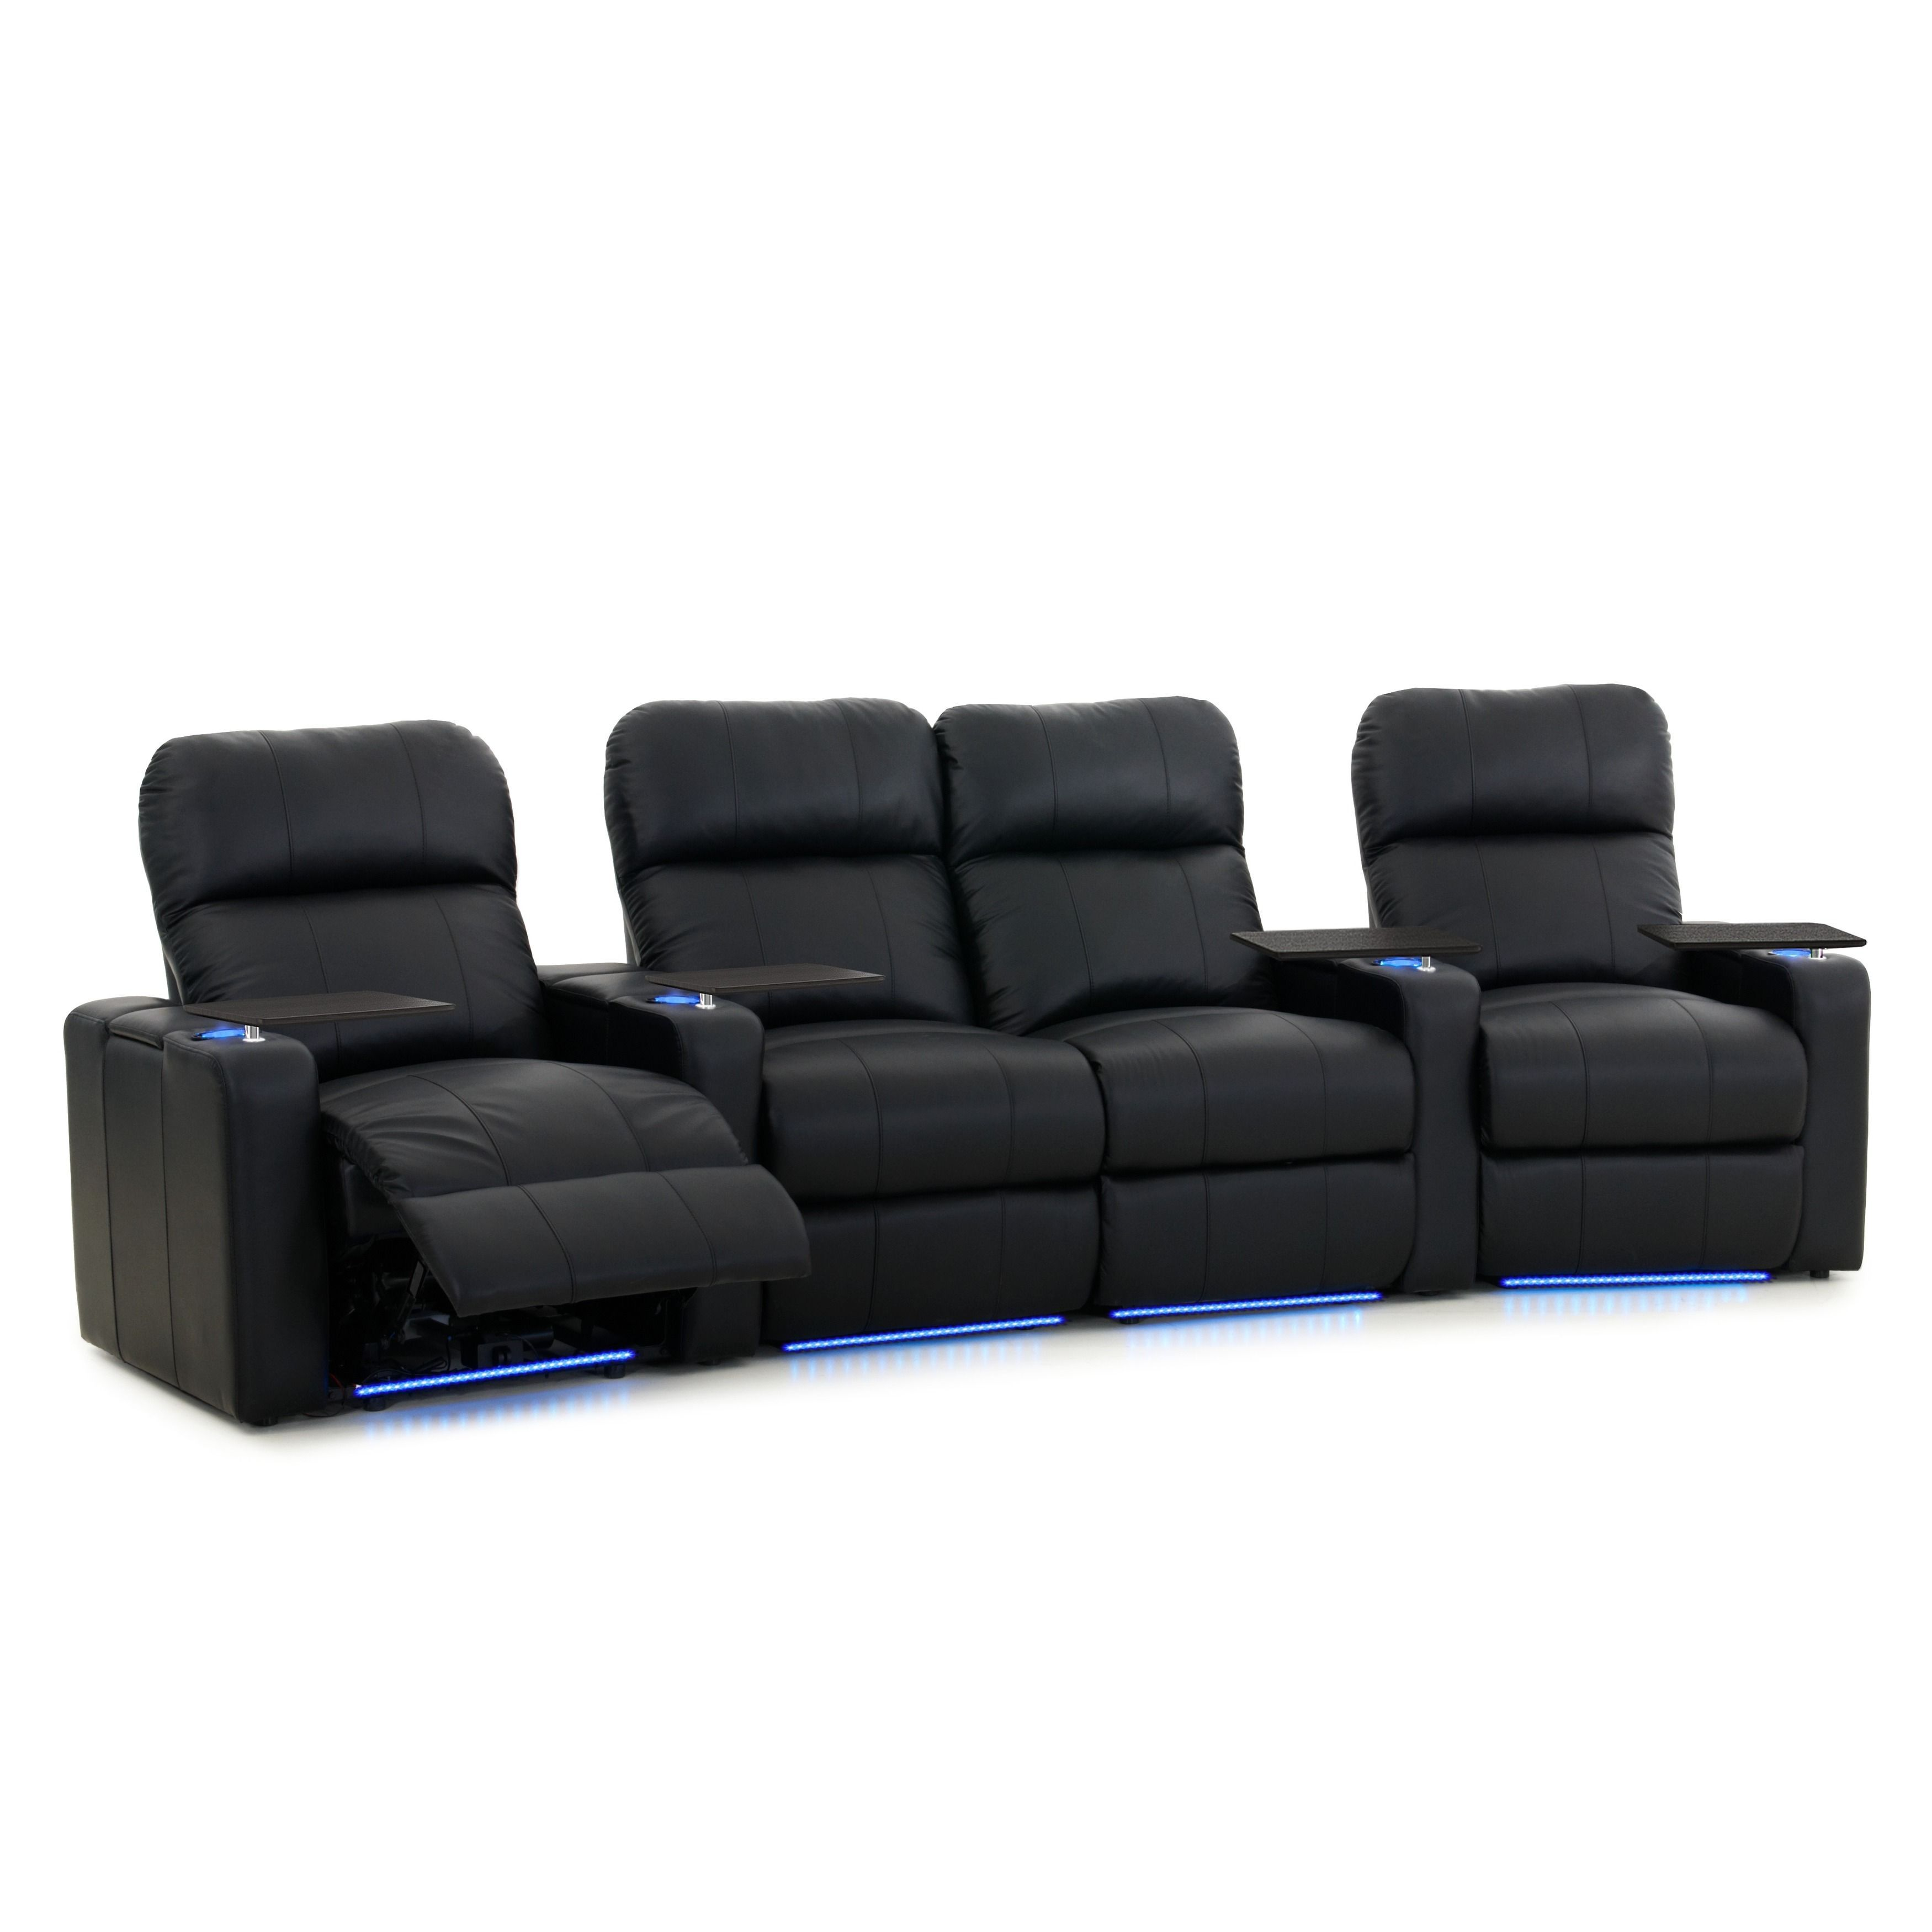 view salamander loveseat av recliner zoom products black larger basics bonded bl motorized leather image bk p theater of seating home